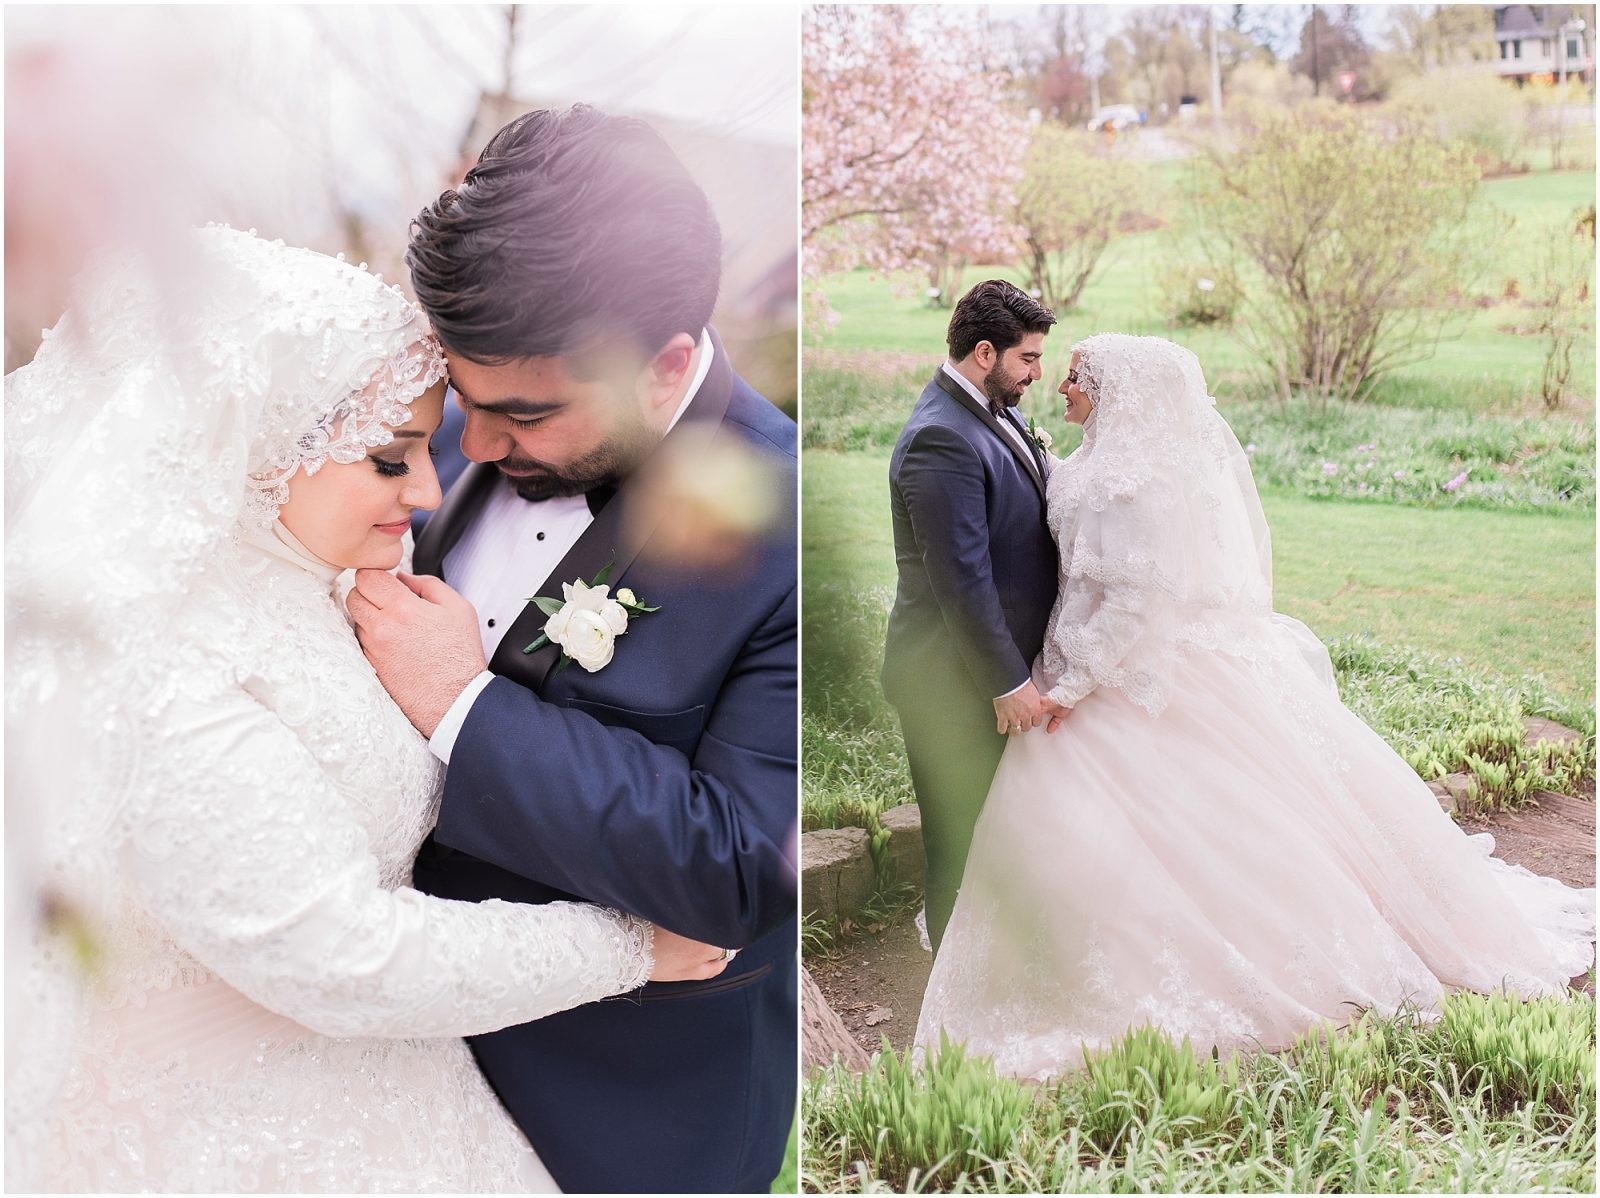 656_Rasha_and_Abdallahs_Wedding___Ornamental_Gardens___Spring_Blossom_Wedding___Centurion_Banquet___Ottawa__photosbyemmah.jpg